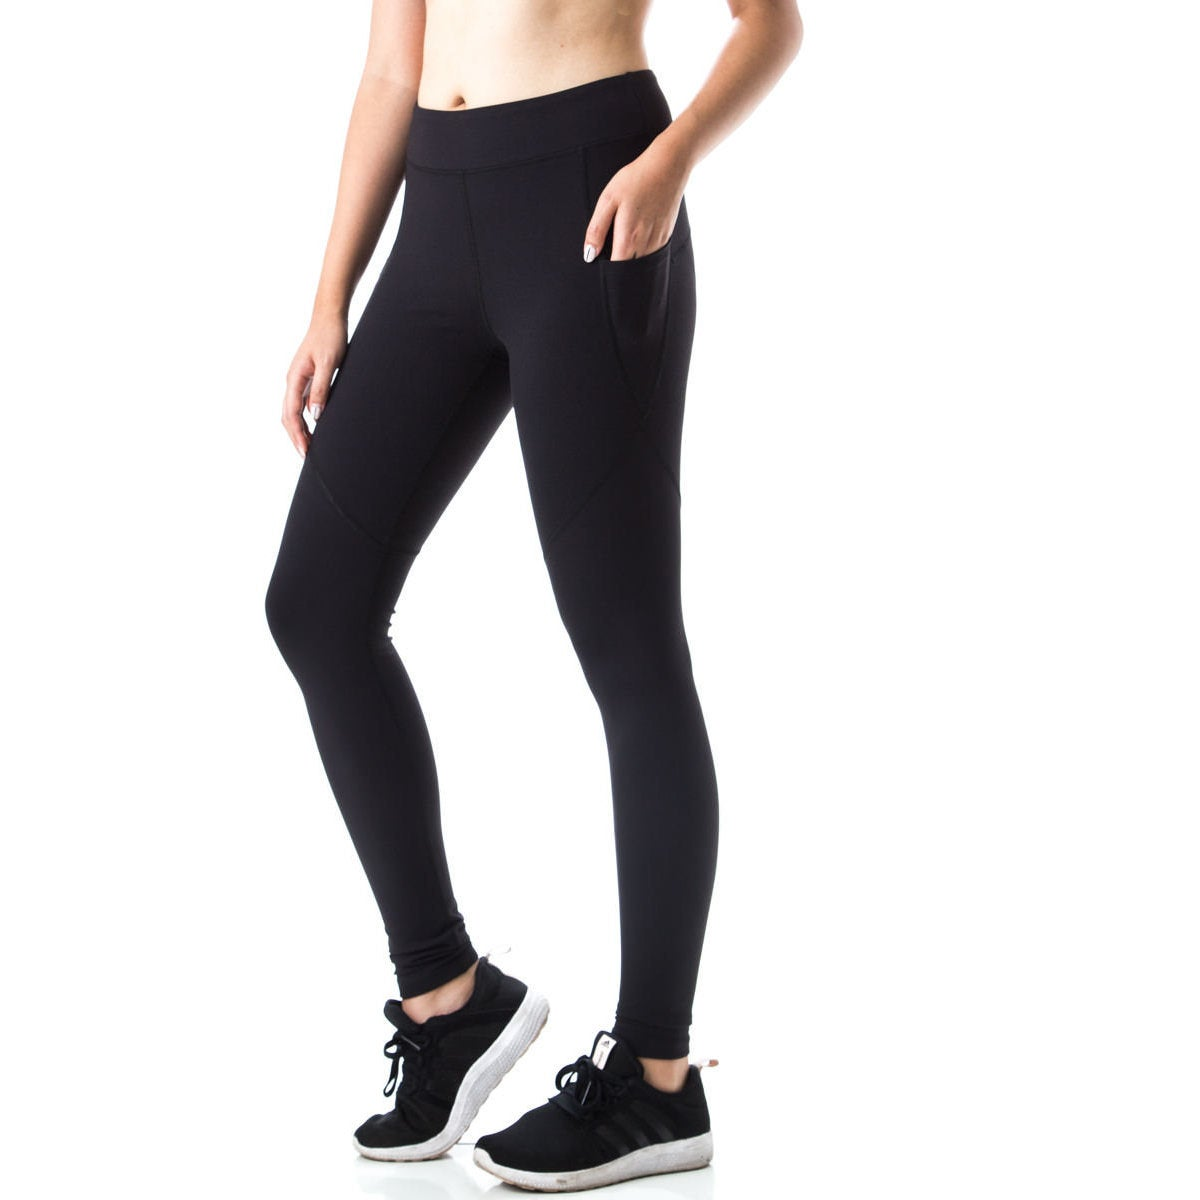 18bac72afae89b Athletic Clothing | Find Great Women's Sport Clothing Deals Shopping at  Overstock